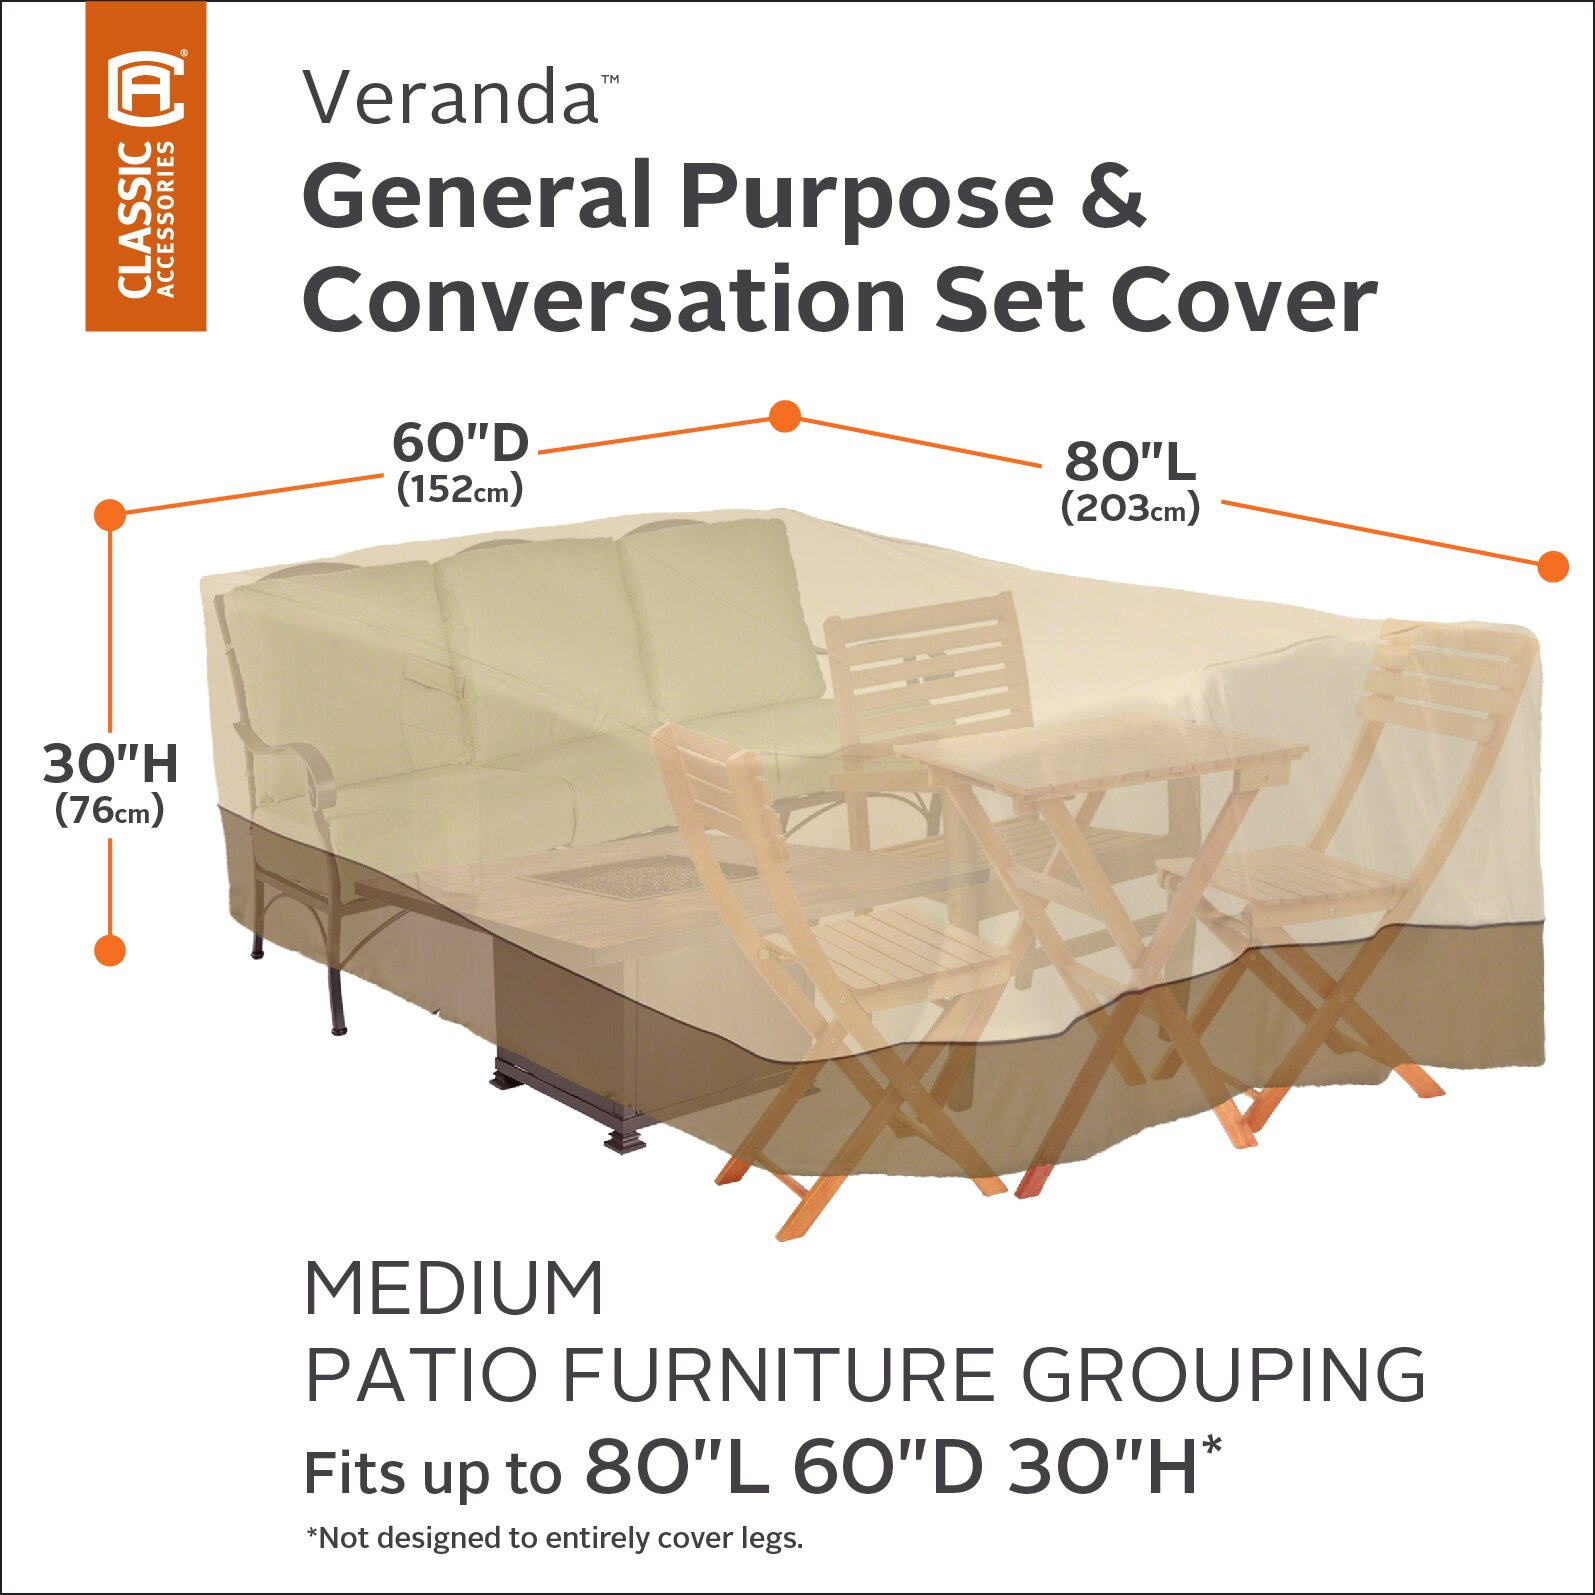 Classic Accessories Veranda General Purpose Patio Furniture Cover